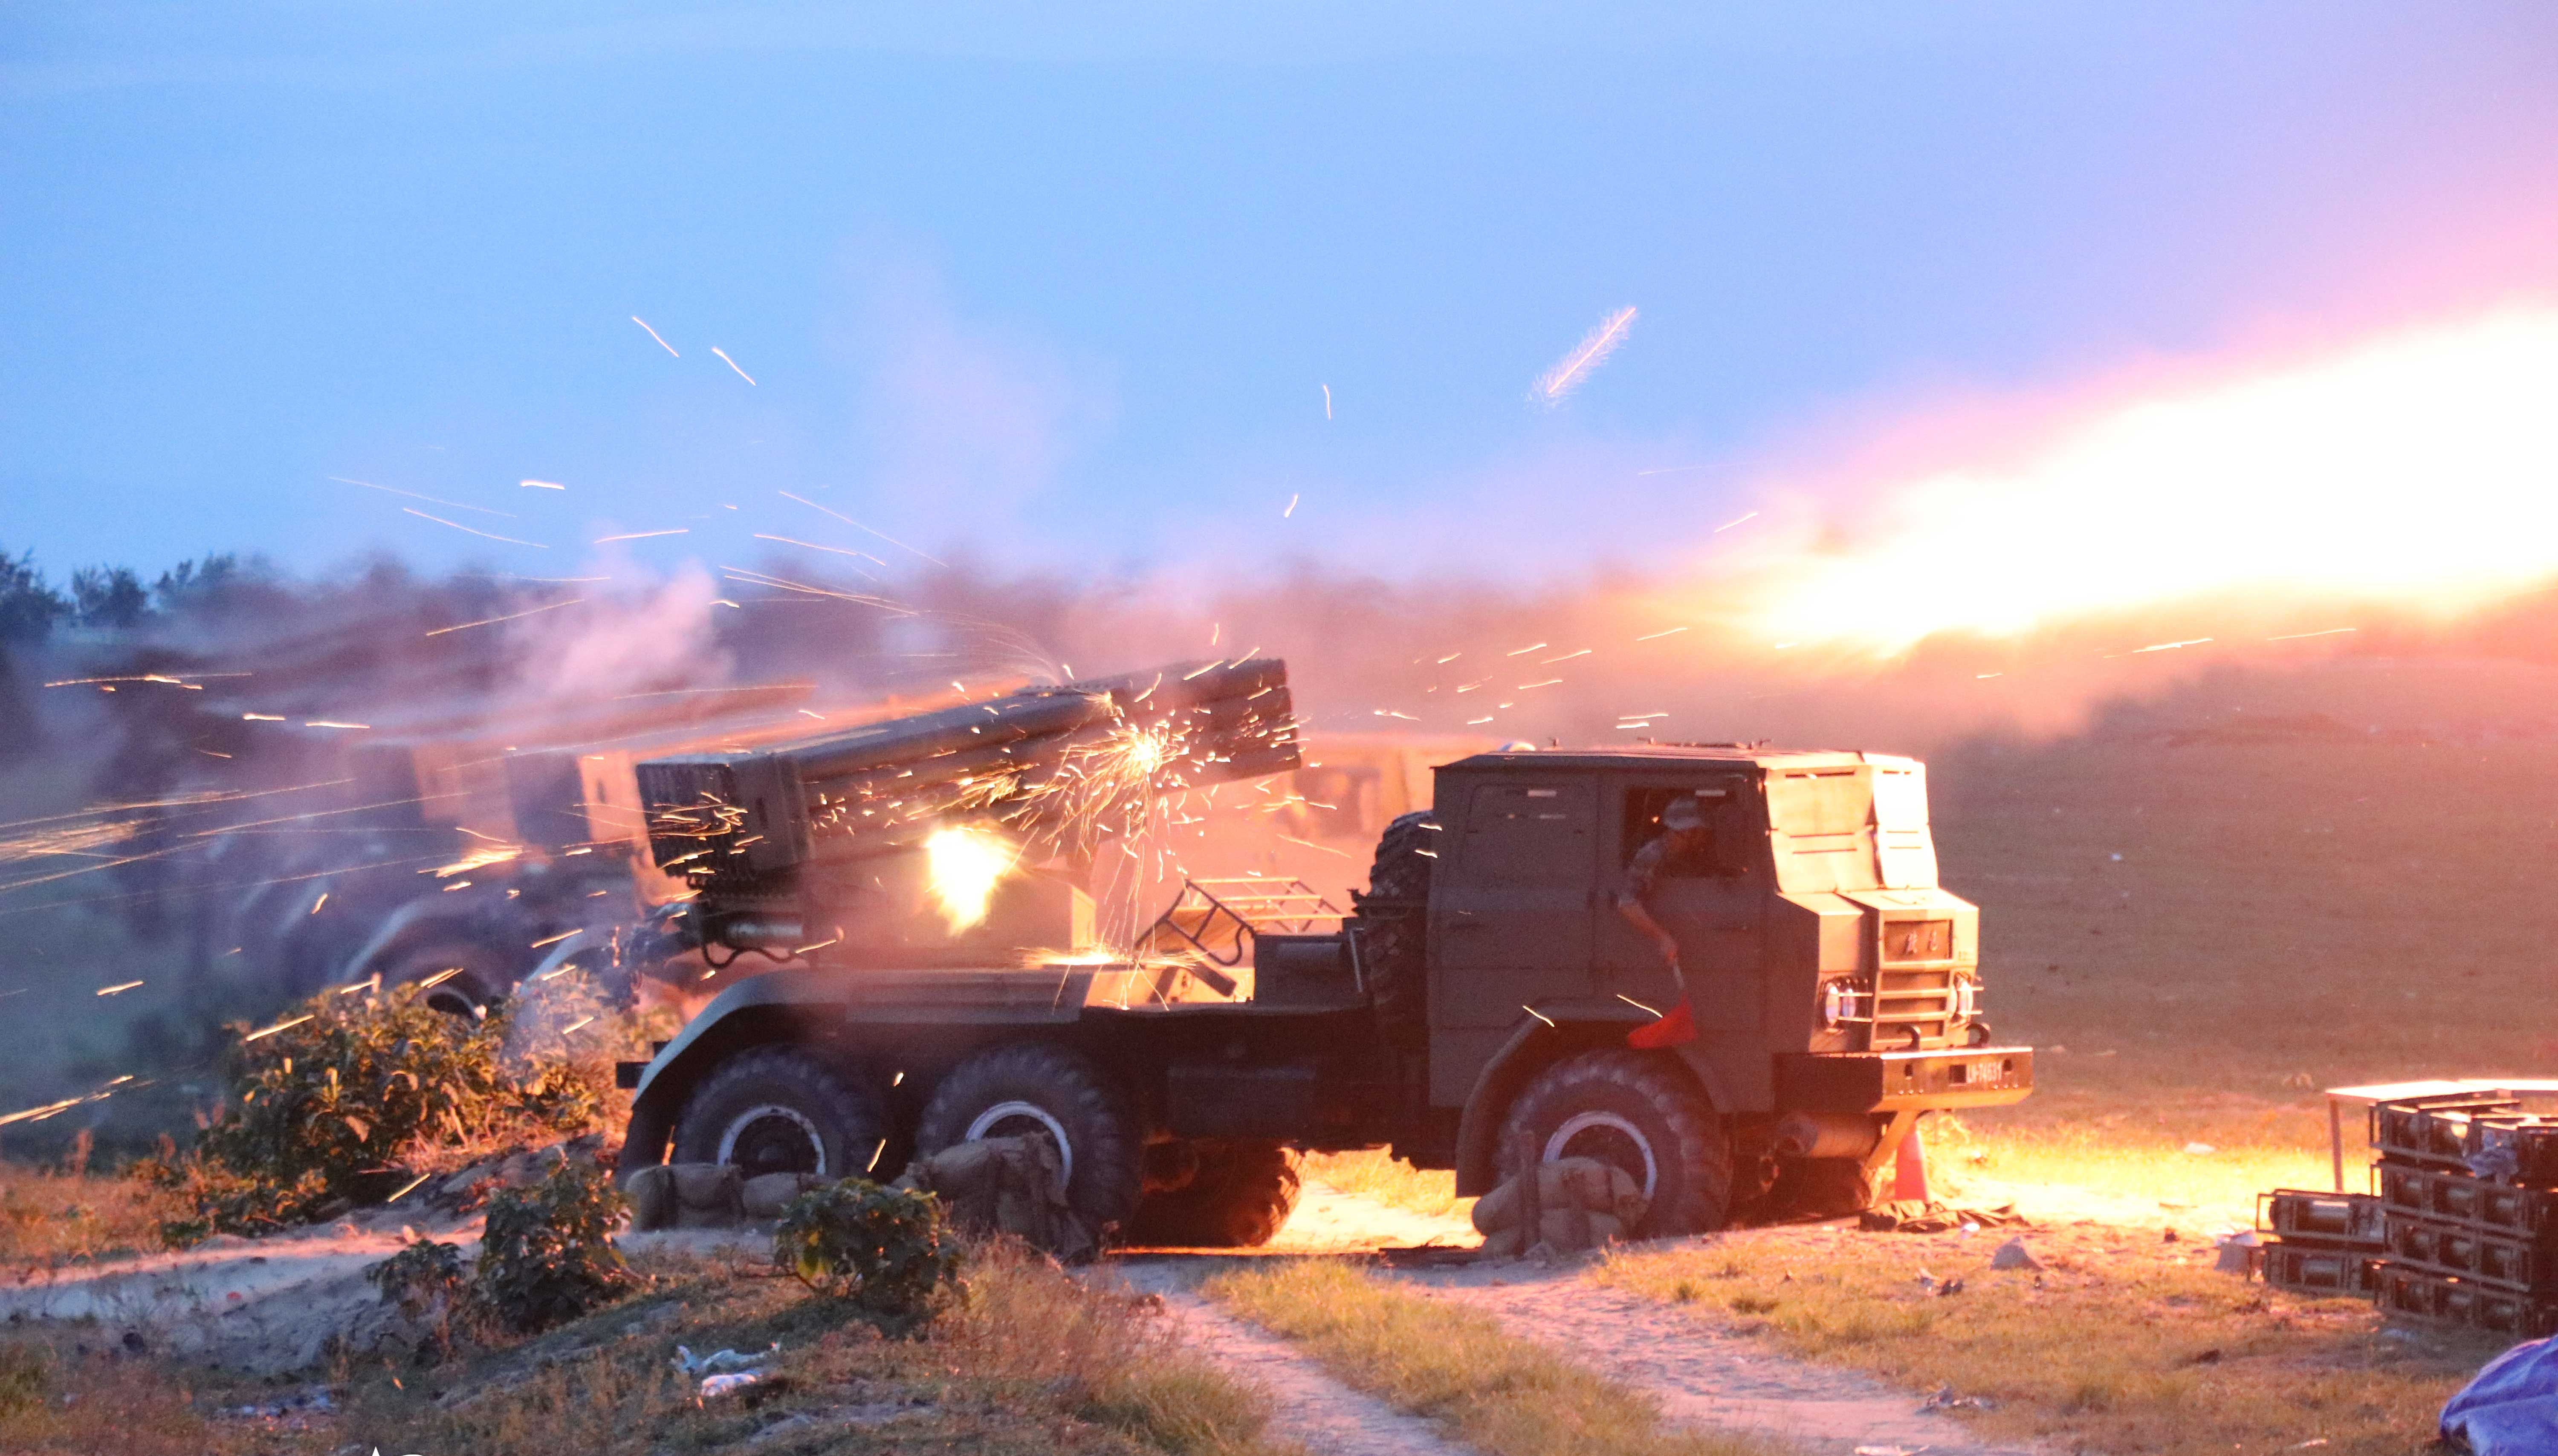 122mm rocket launcher systems fire at mock targets